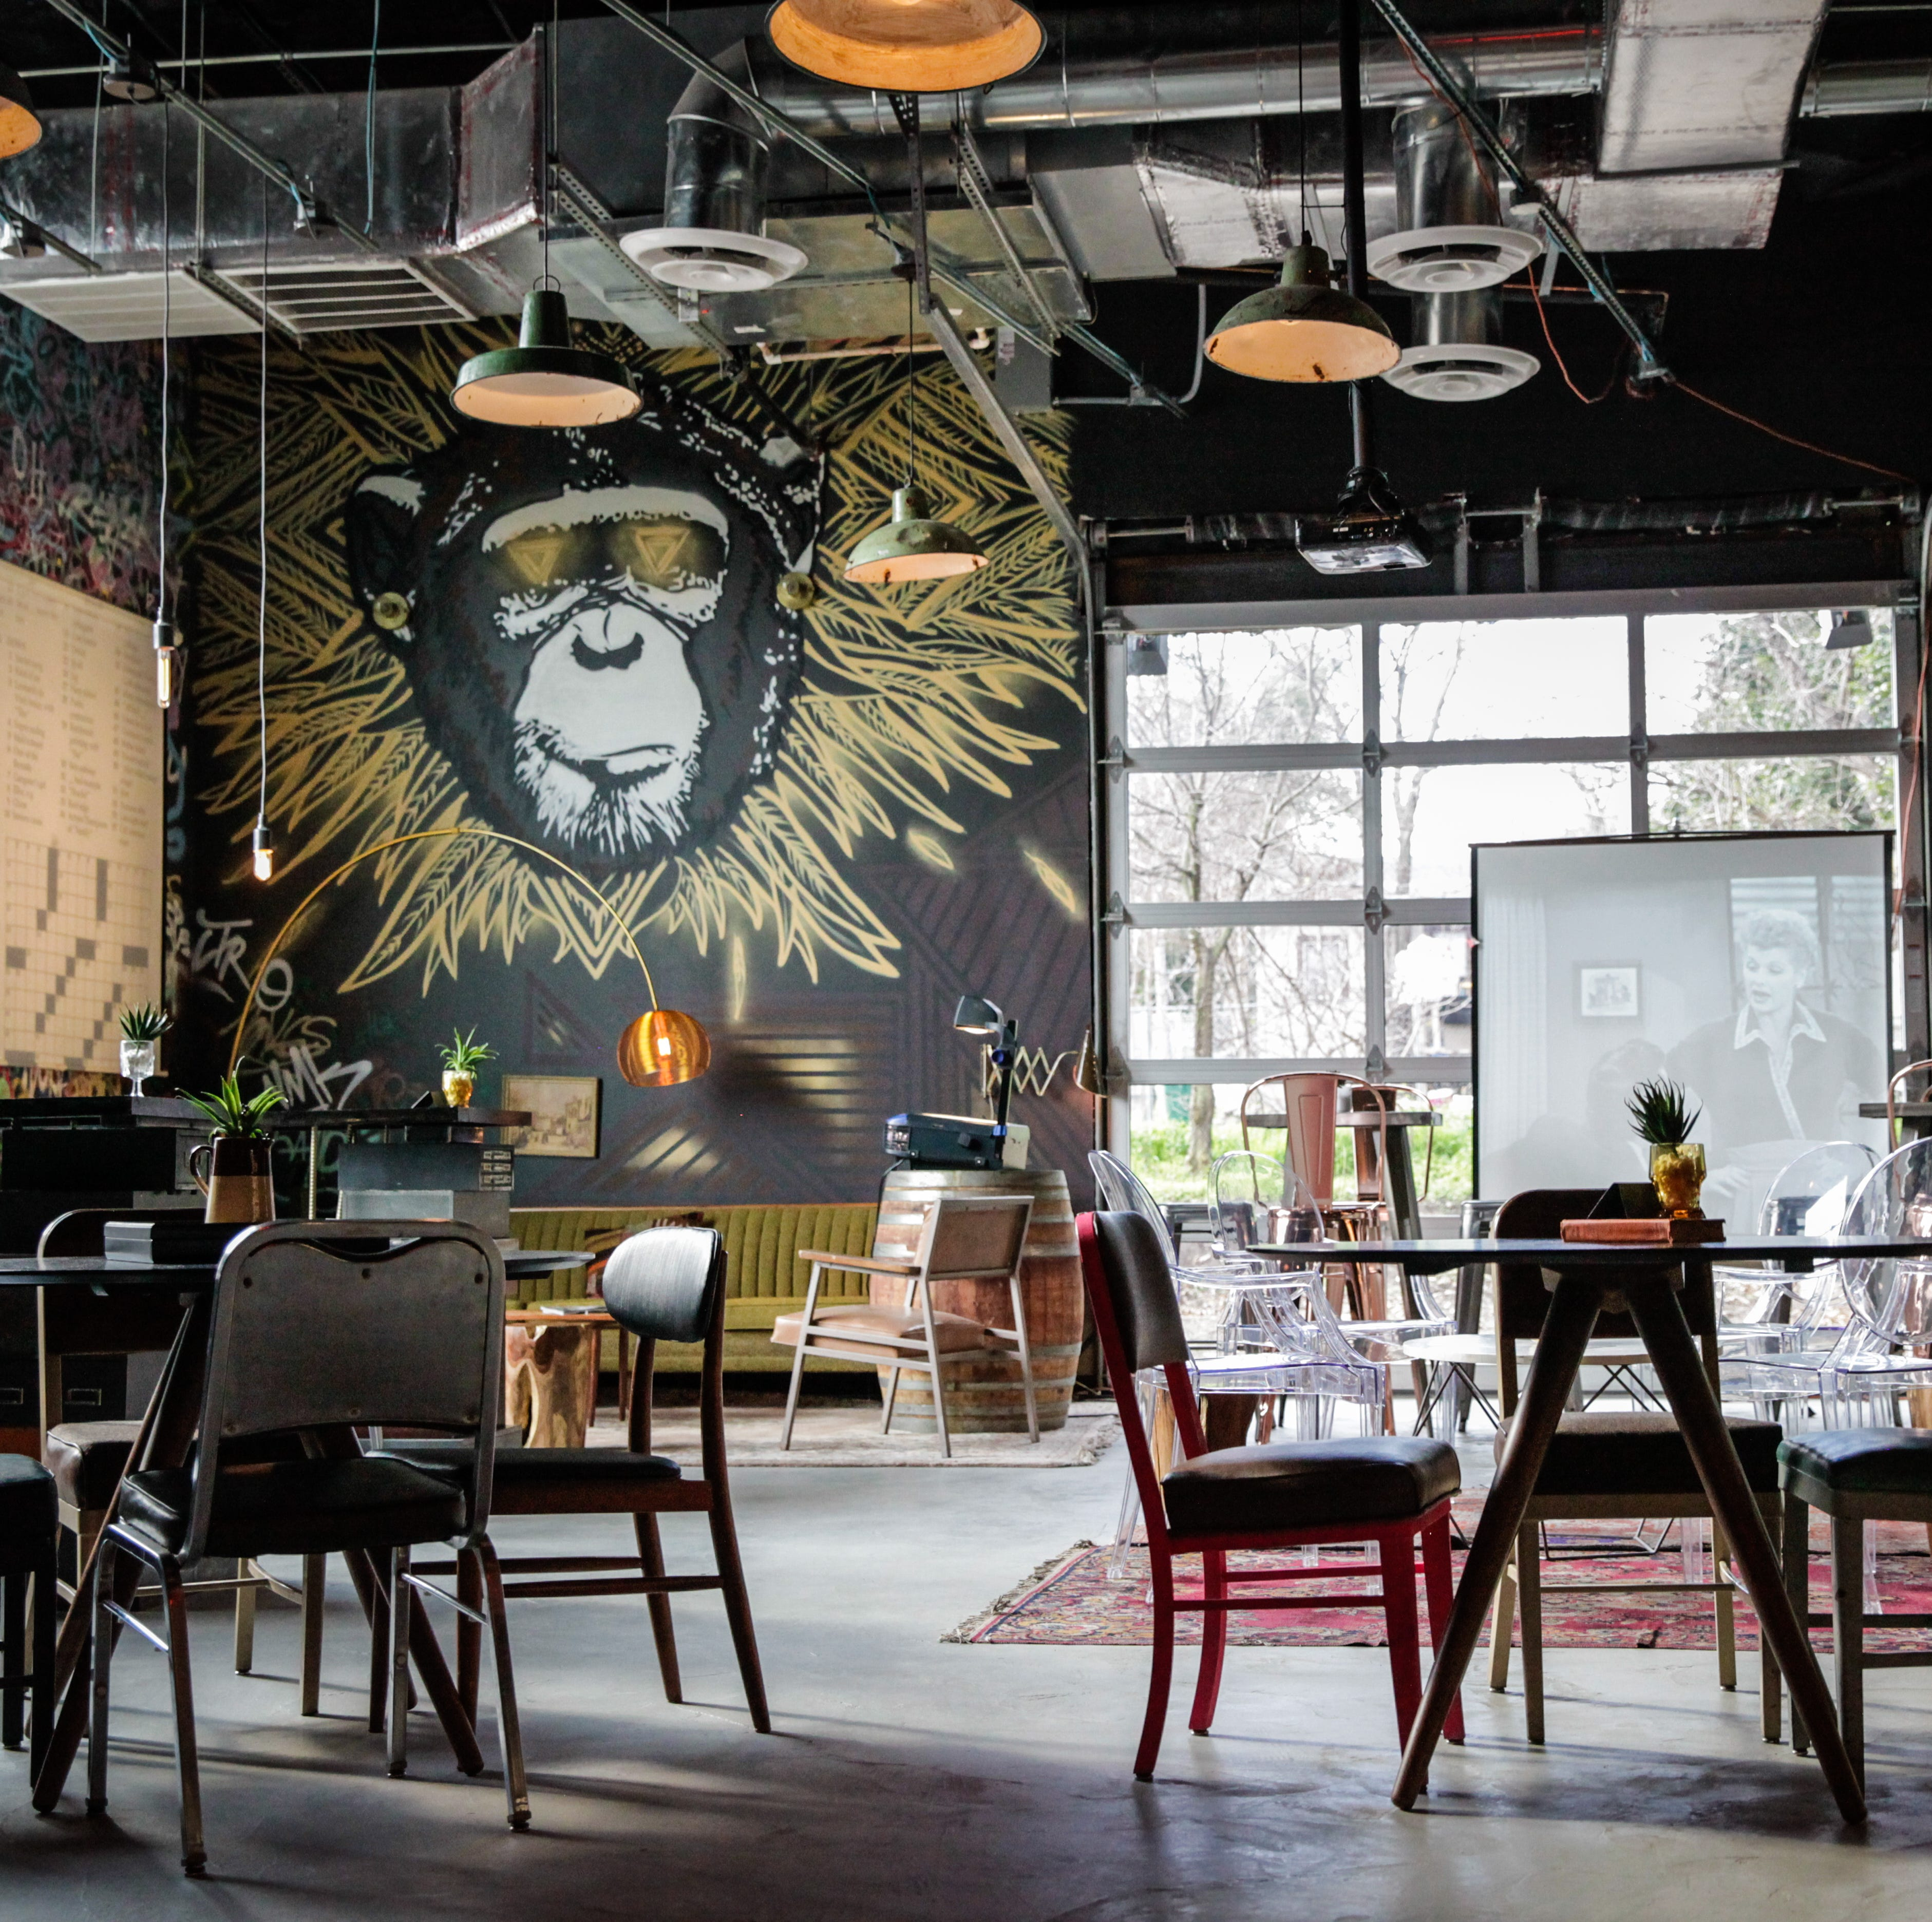 Infinite Monkey Theorem, Blendings at the Preserve plan wine taprooms in Fort Collins